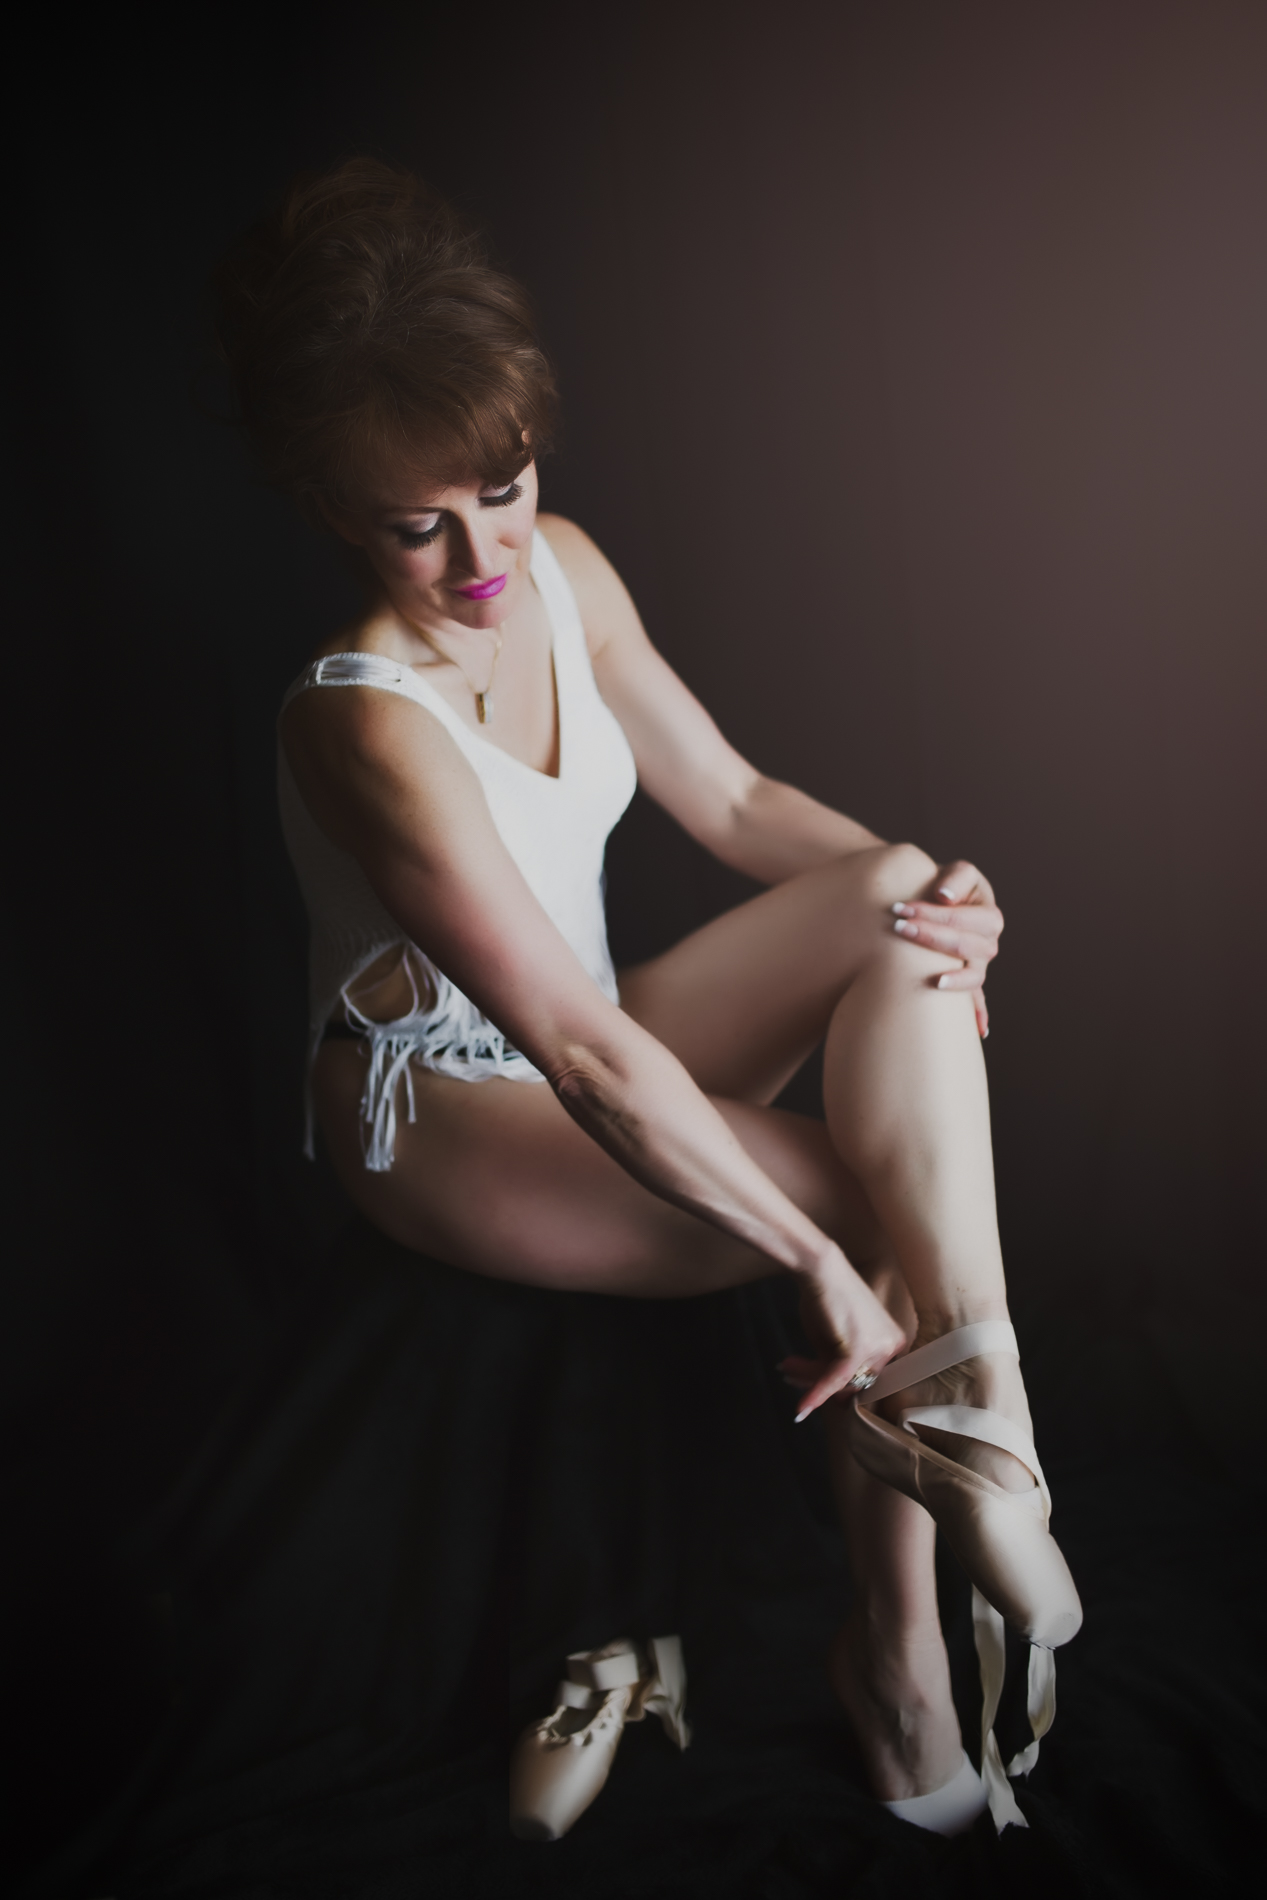 portrait of woman with ballet shoes